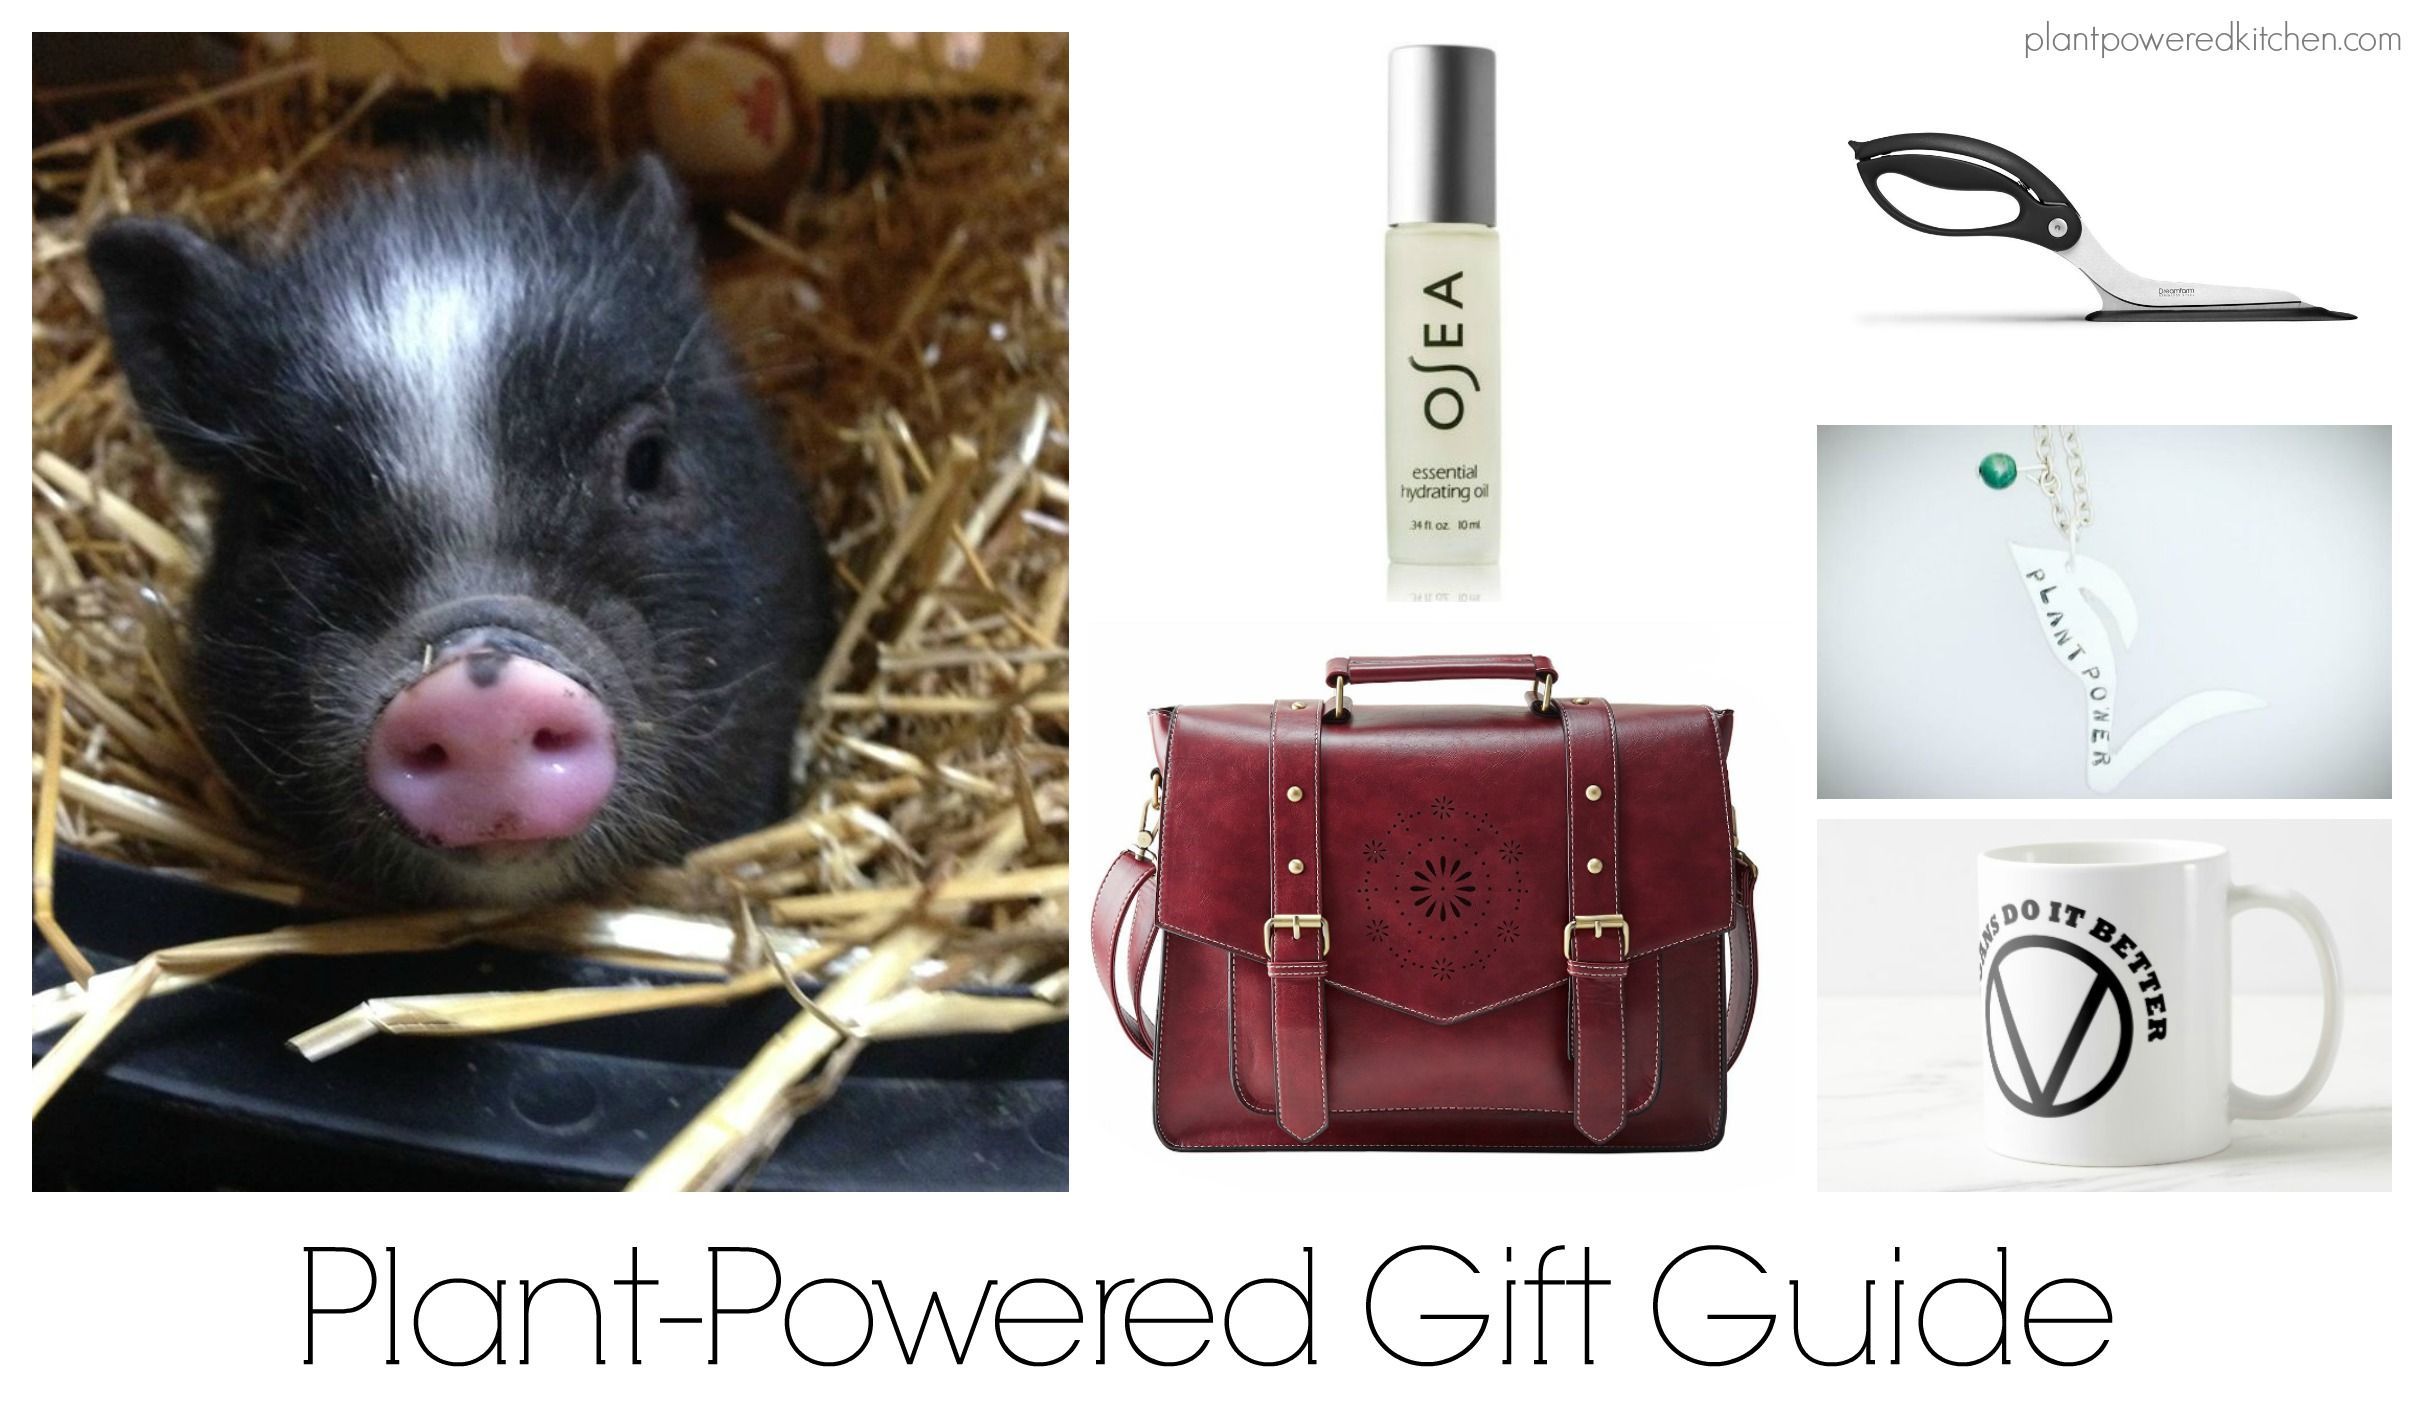 Gifts for Vegans and Plant-Powered Gifts | Holiday Gift Guide ...